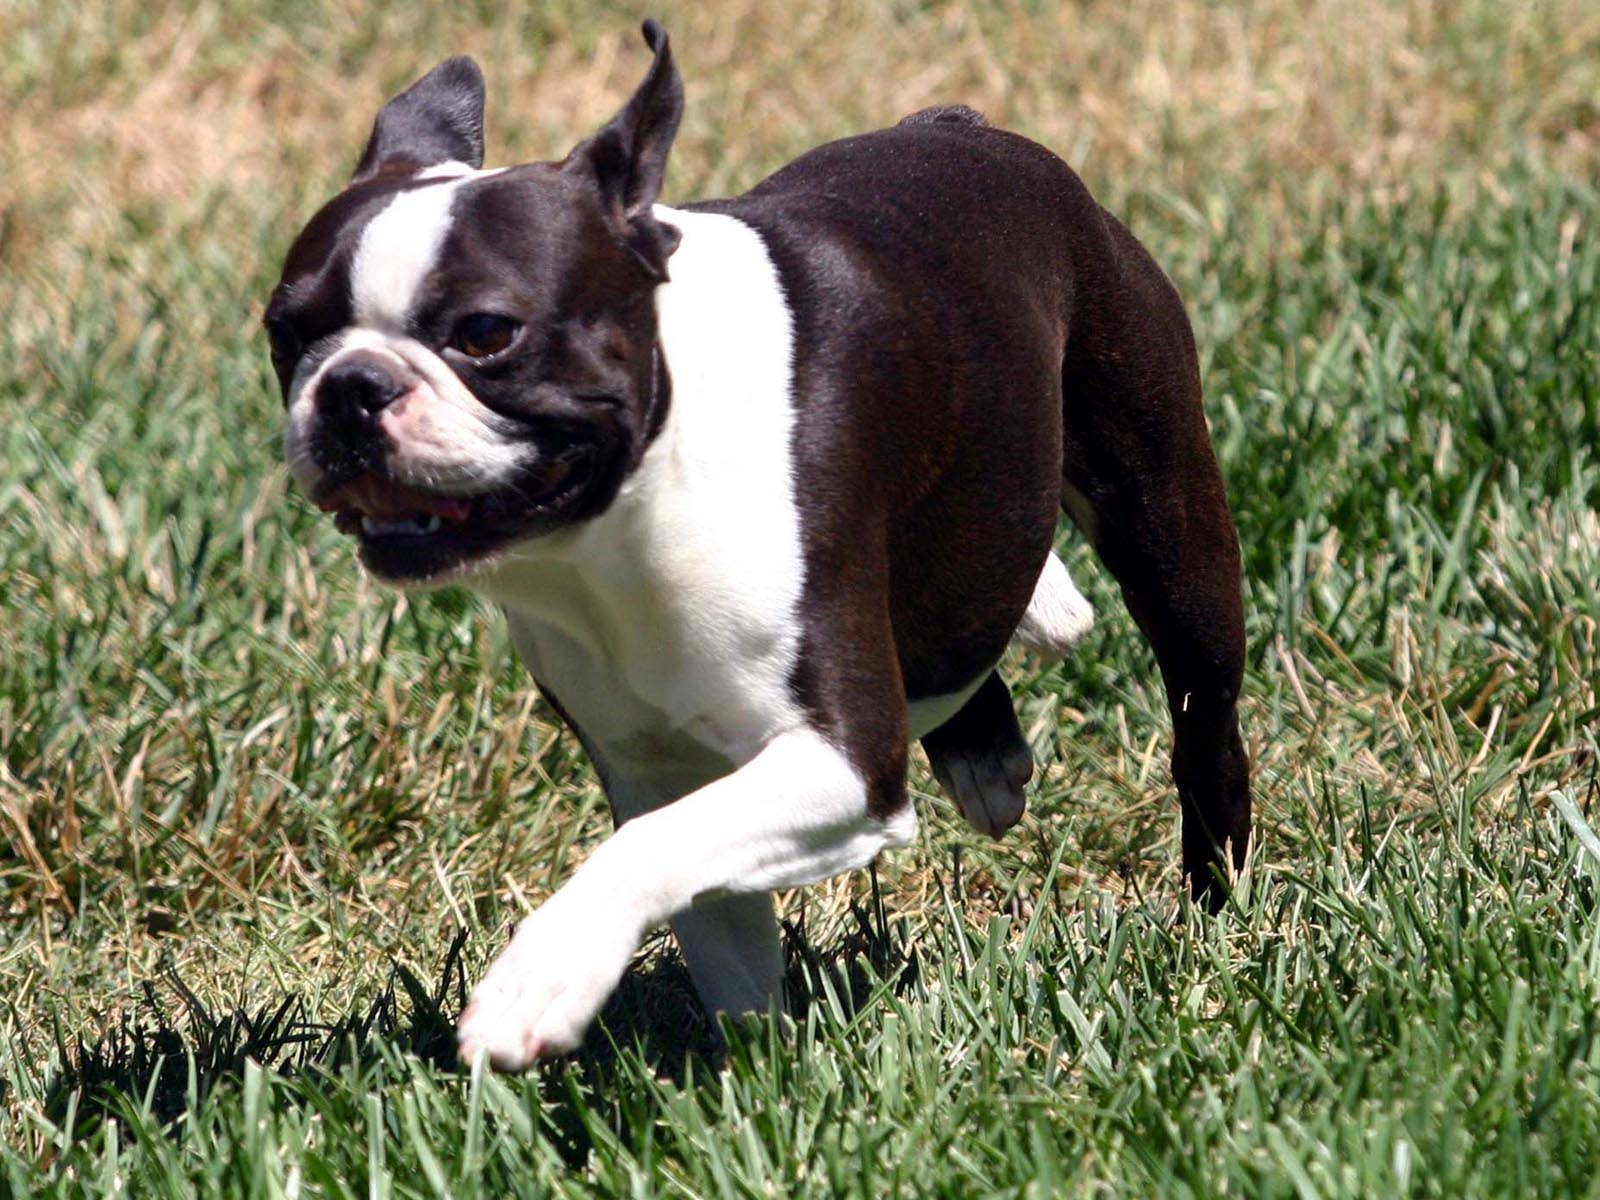 Boston Terrier Desktop Background - Page 3 of 3 - wallpaper.wiki